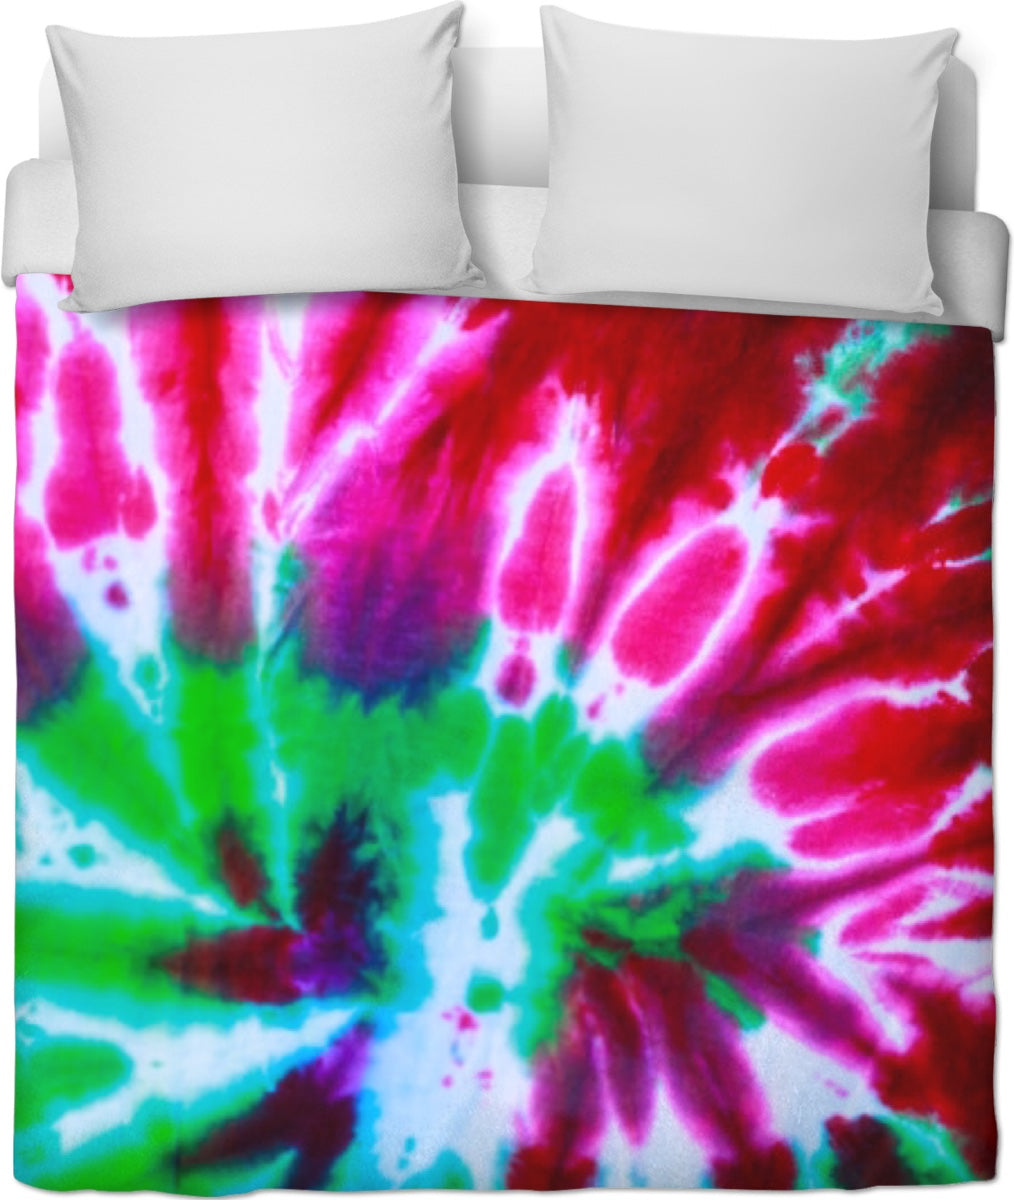 Green And Link Tie Dye Duvet Cover